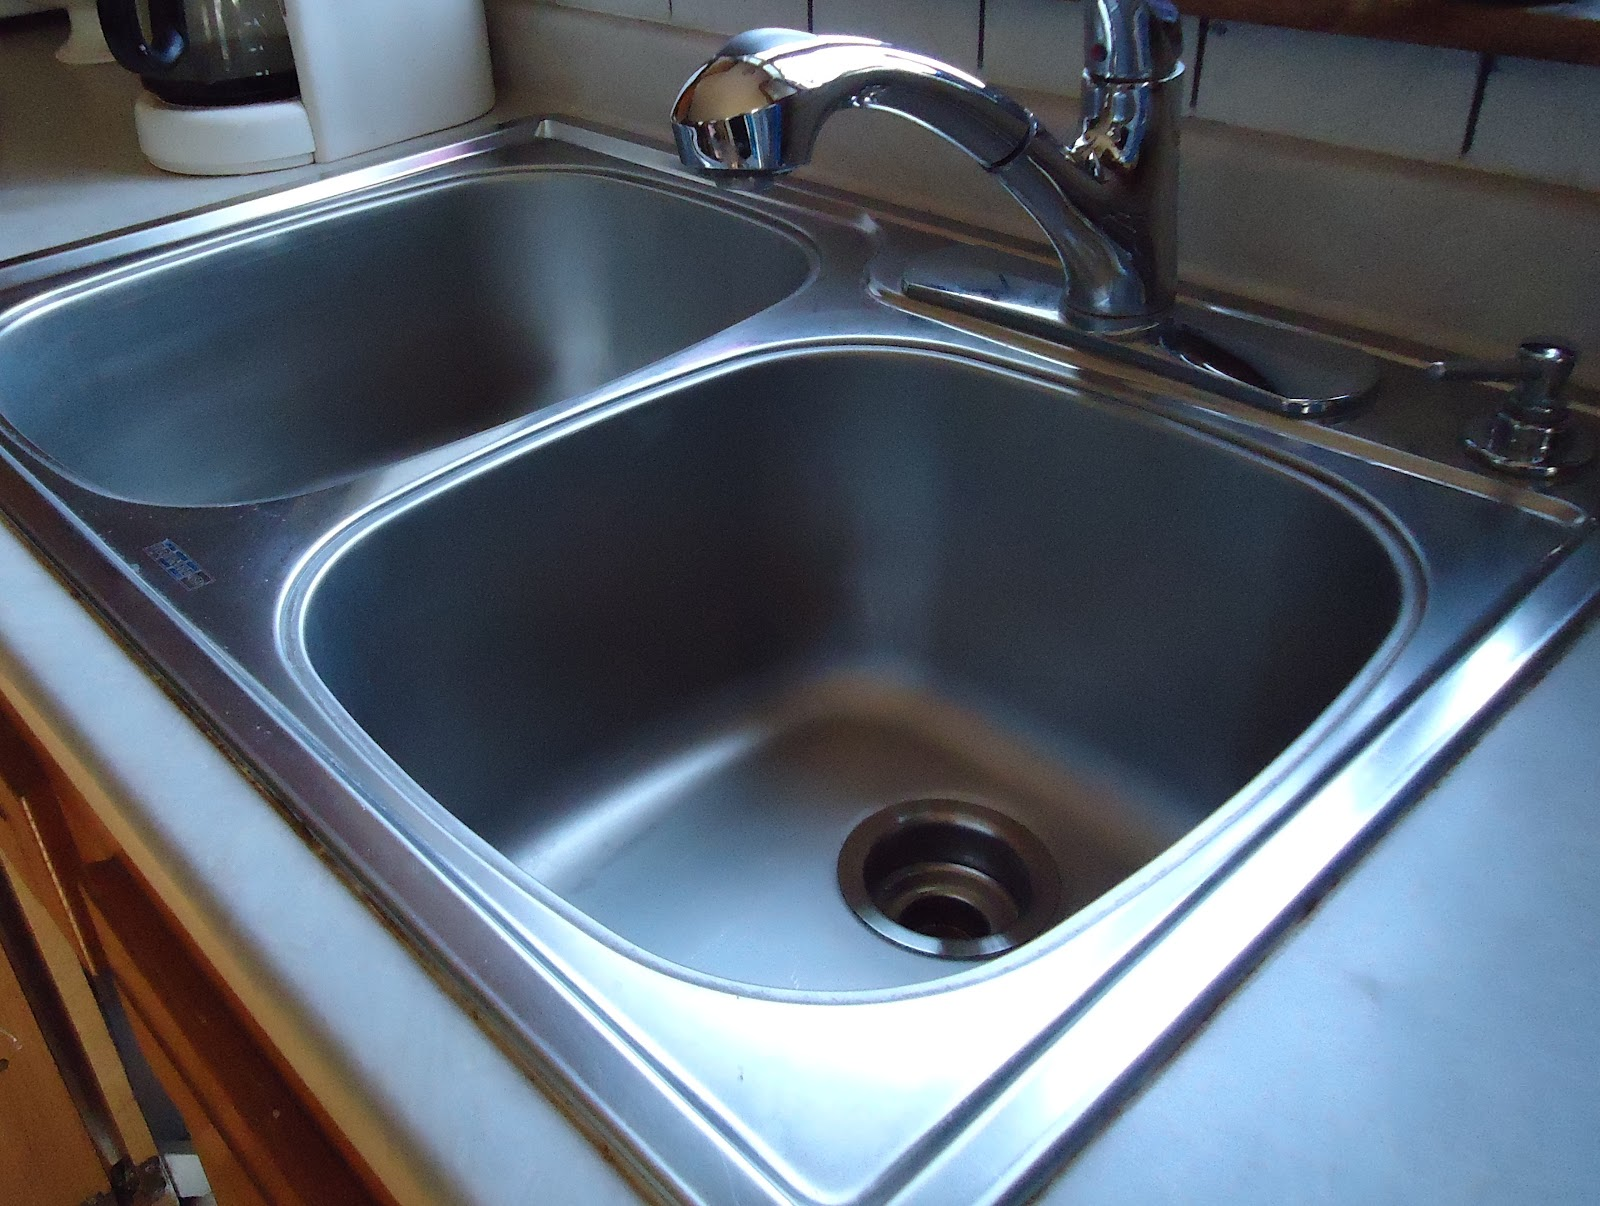 Easy peasy education shine your sink - What can i use to unclog my bathroom sink ...